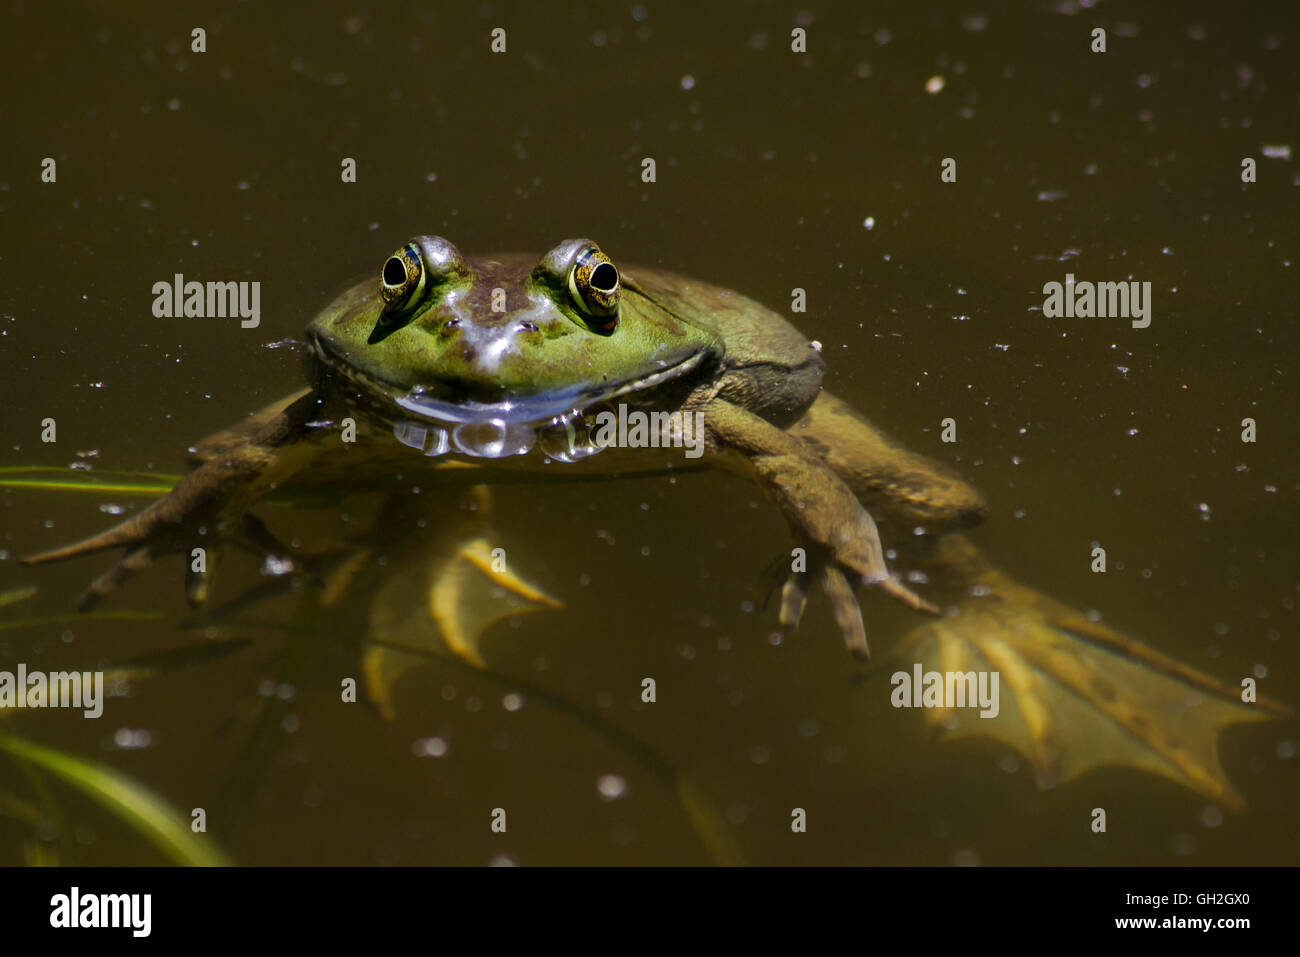 Bull frog in pond up close Stock Photo